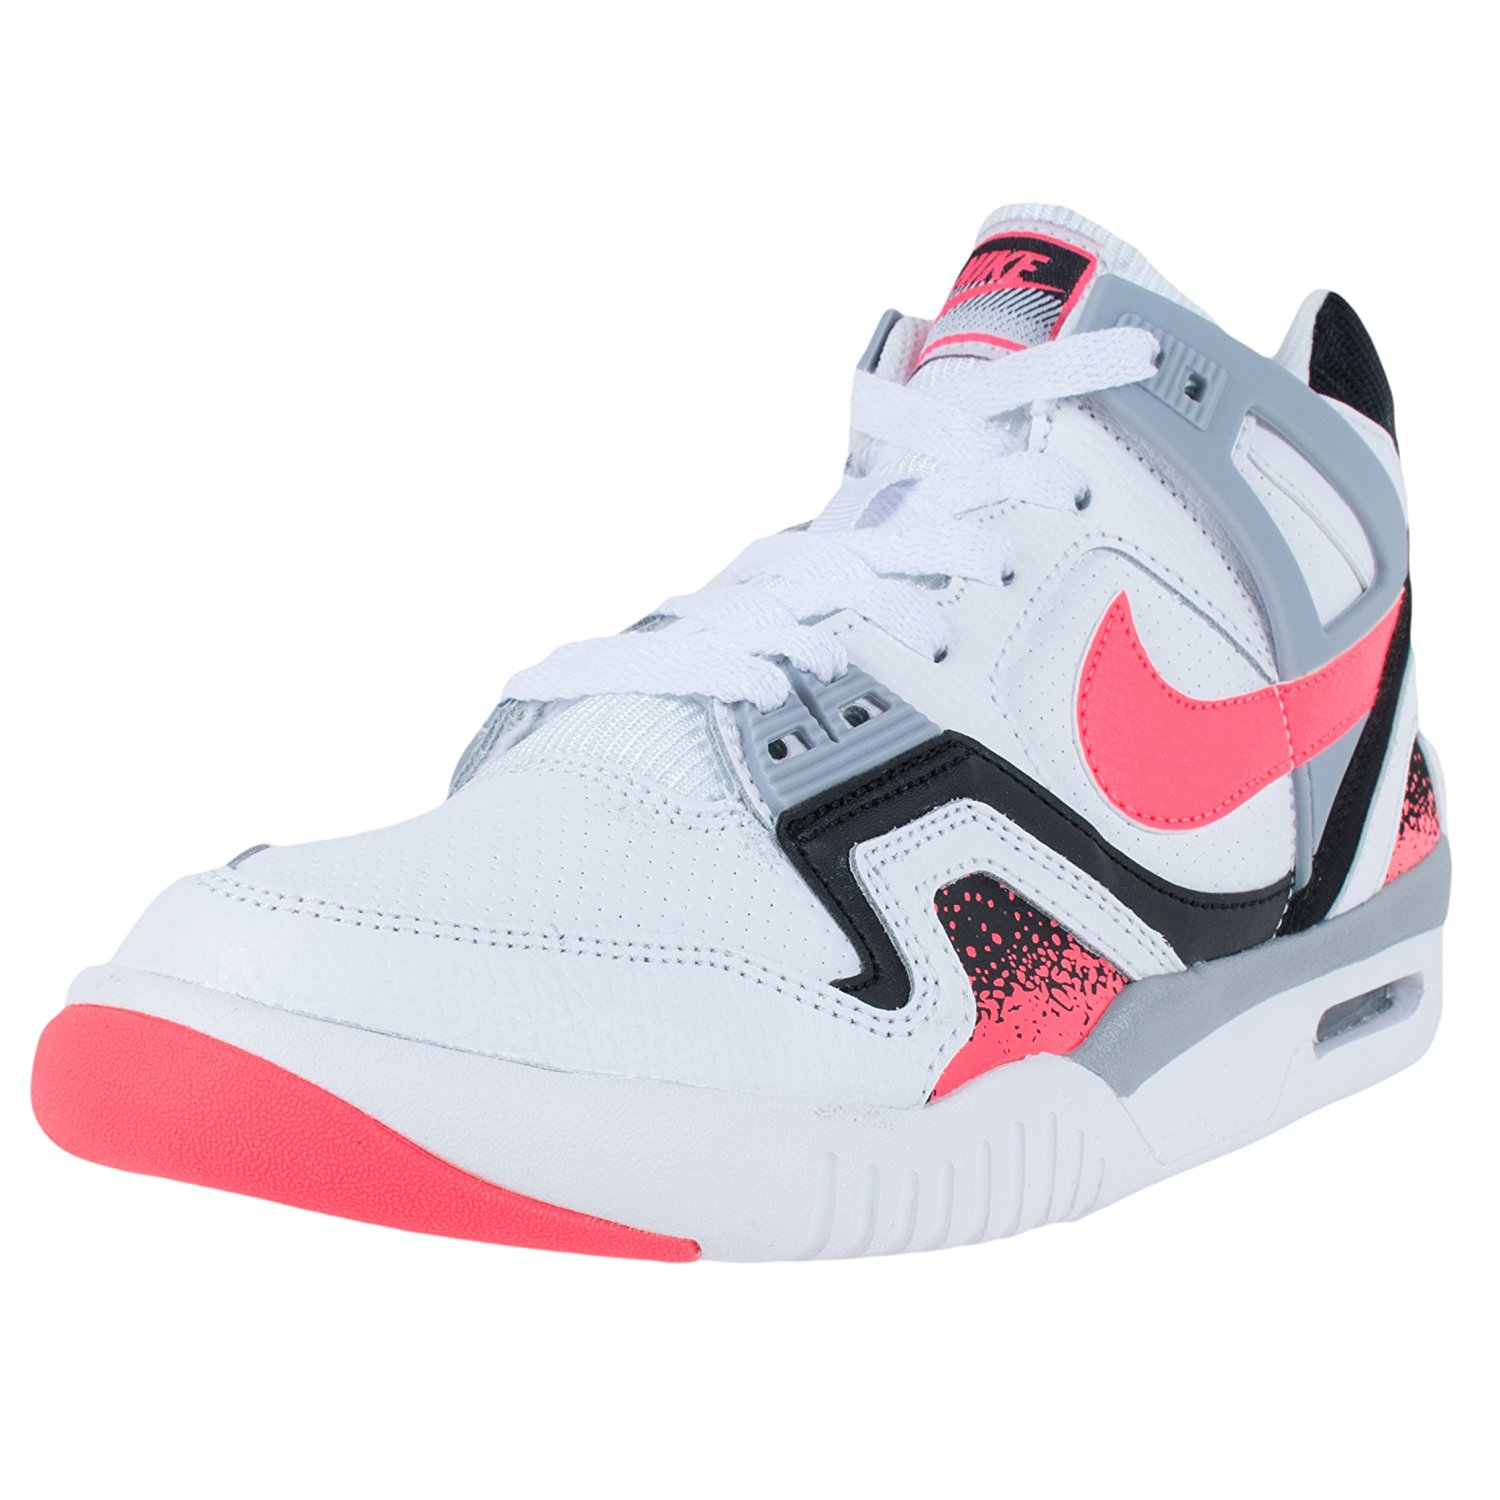 brand new 32474 aa75b Get Quotations · NIKE BOYS AIR TECH CHALLENGE 2 GS TENNIS SHOES WHITE HYPER  PUNCH 654435 101